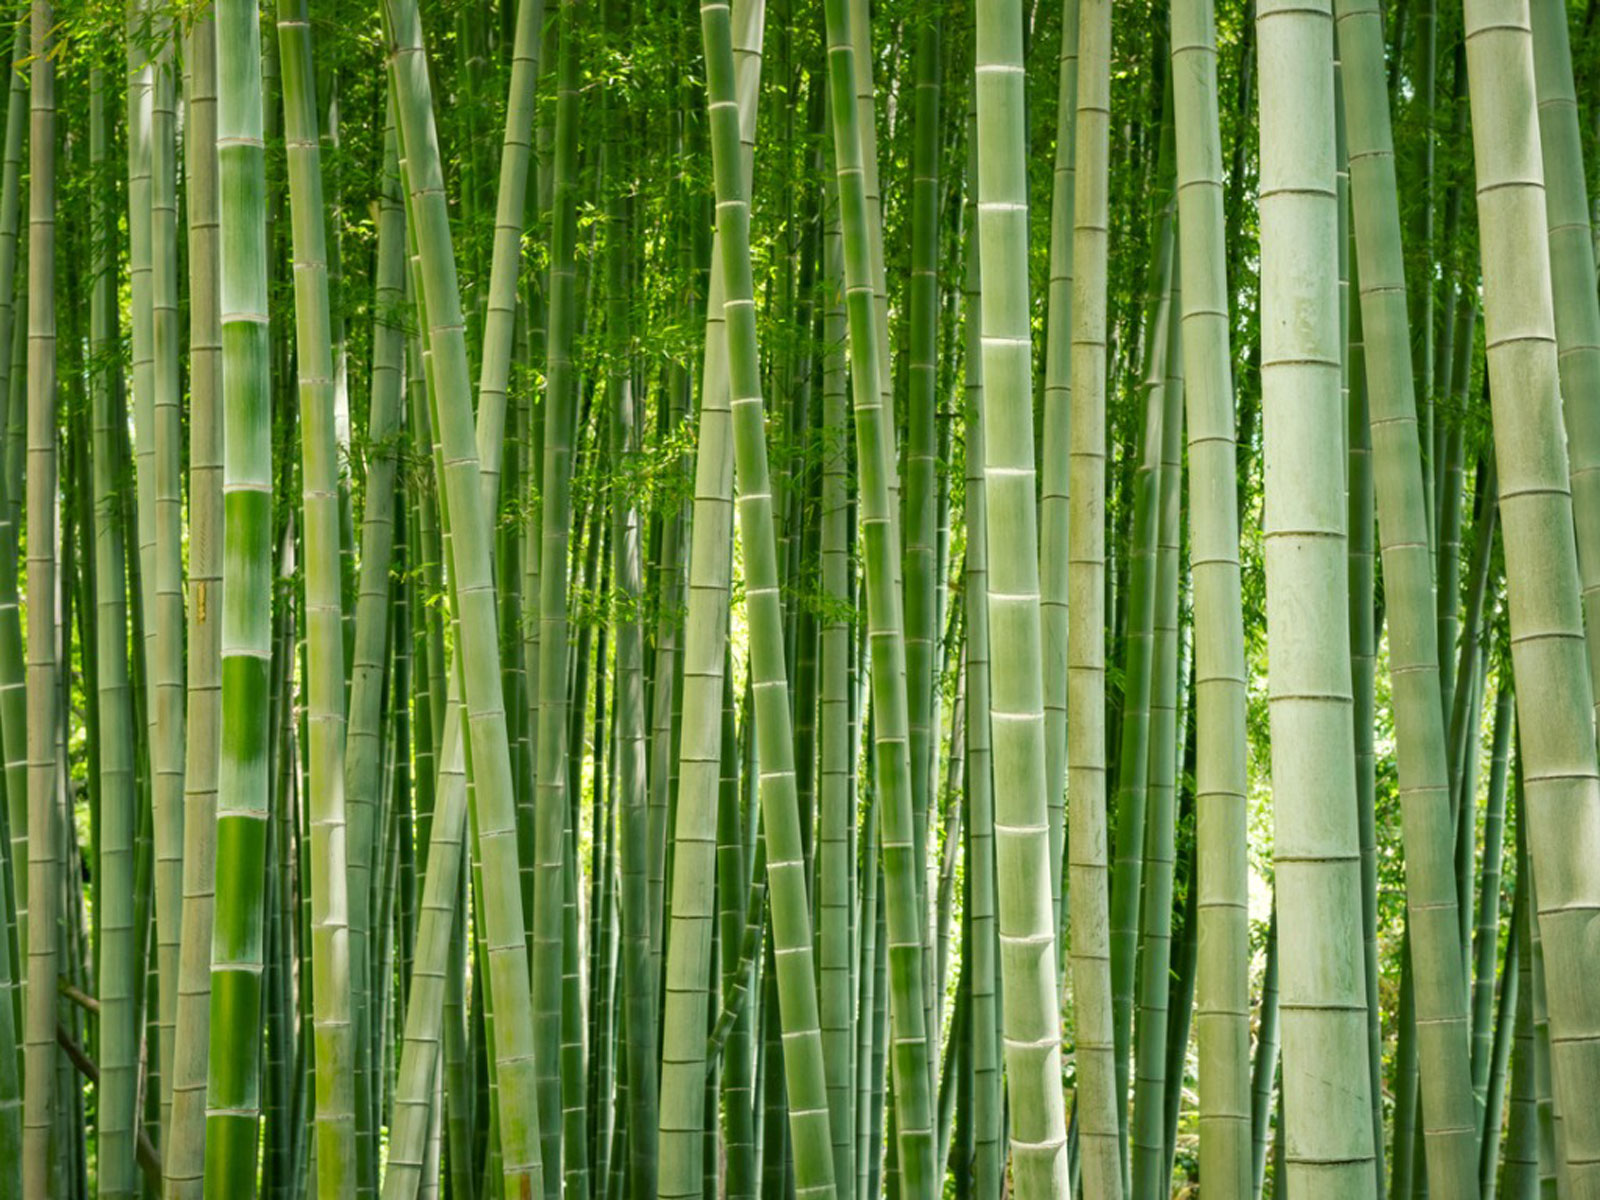 Bamboo Control: How To Get Rid Of Bamboo